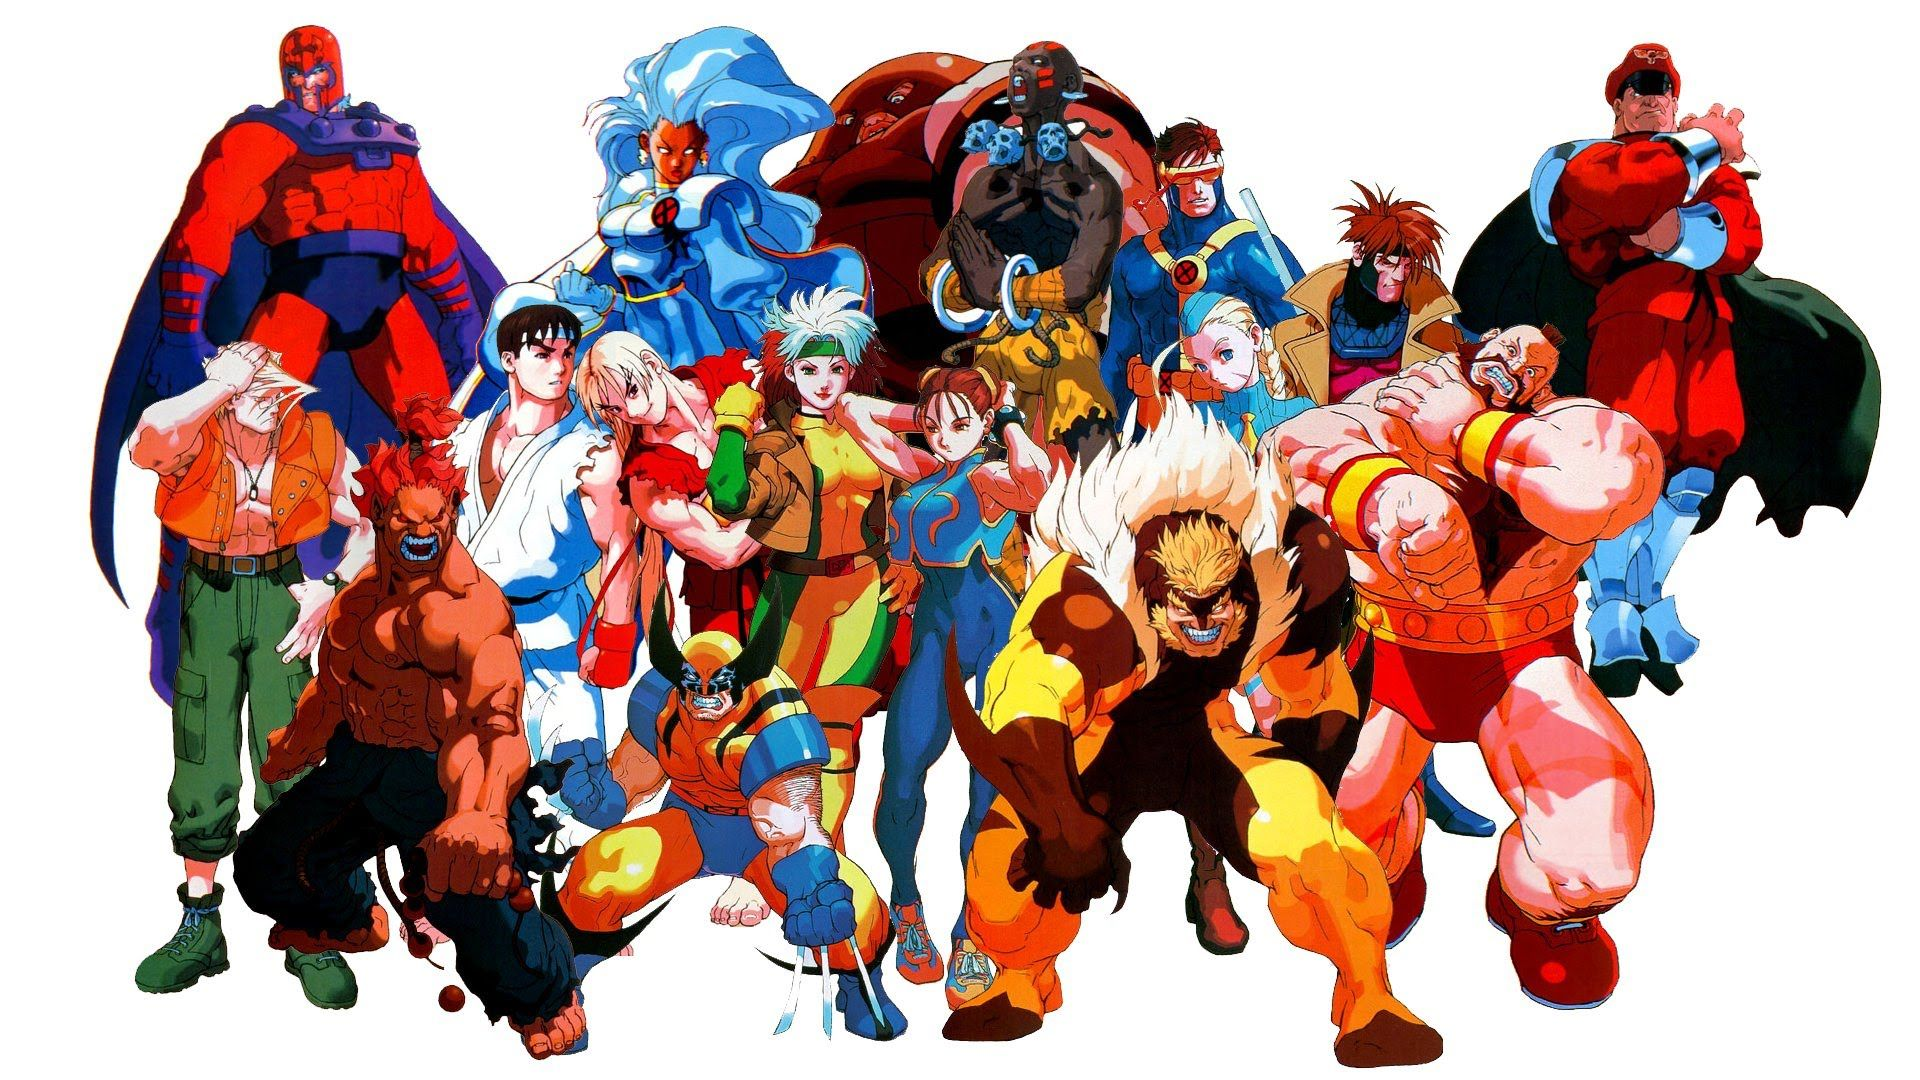 X Men Vs Street Fighter Capcom Street Fighter Comics Street Fighter Street Fighter Wallpaper